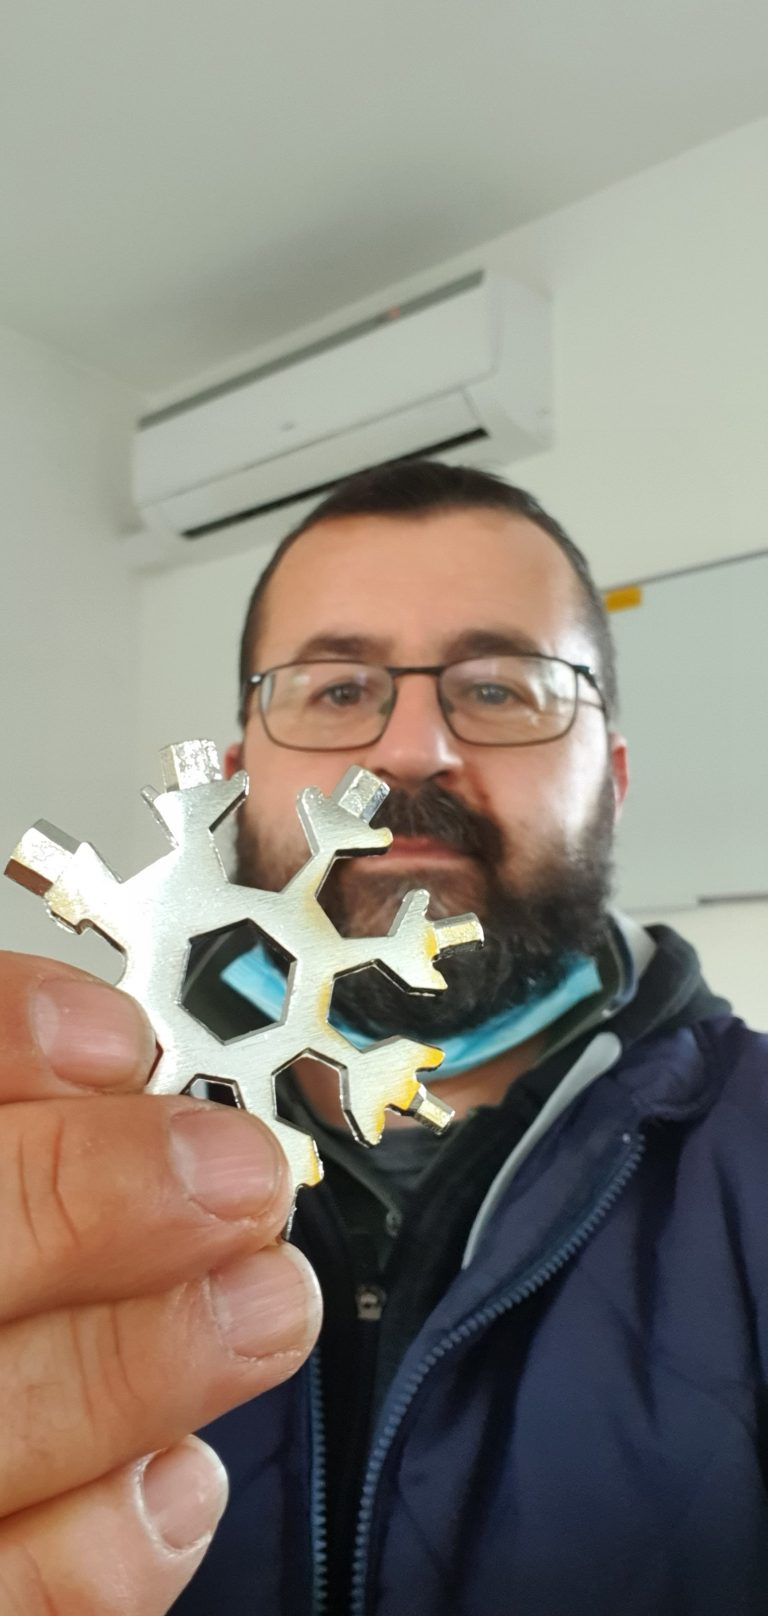 Snowflake multitool photo review